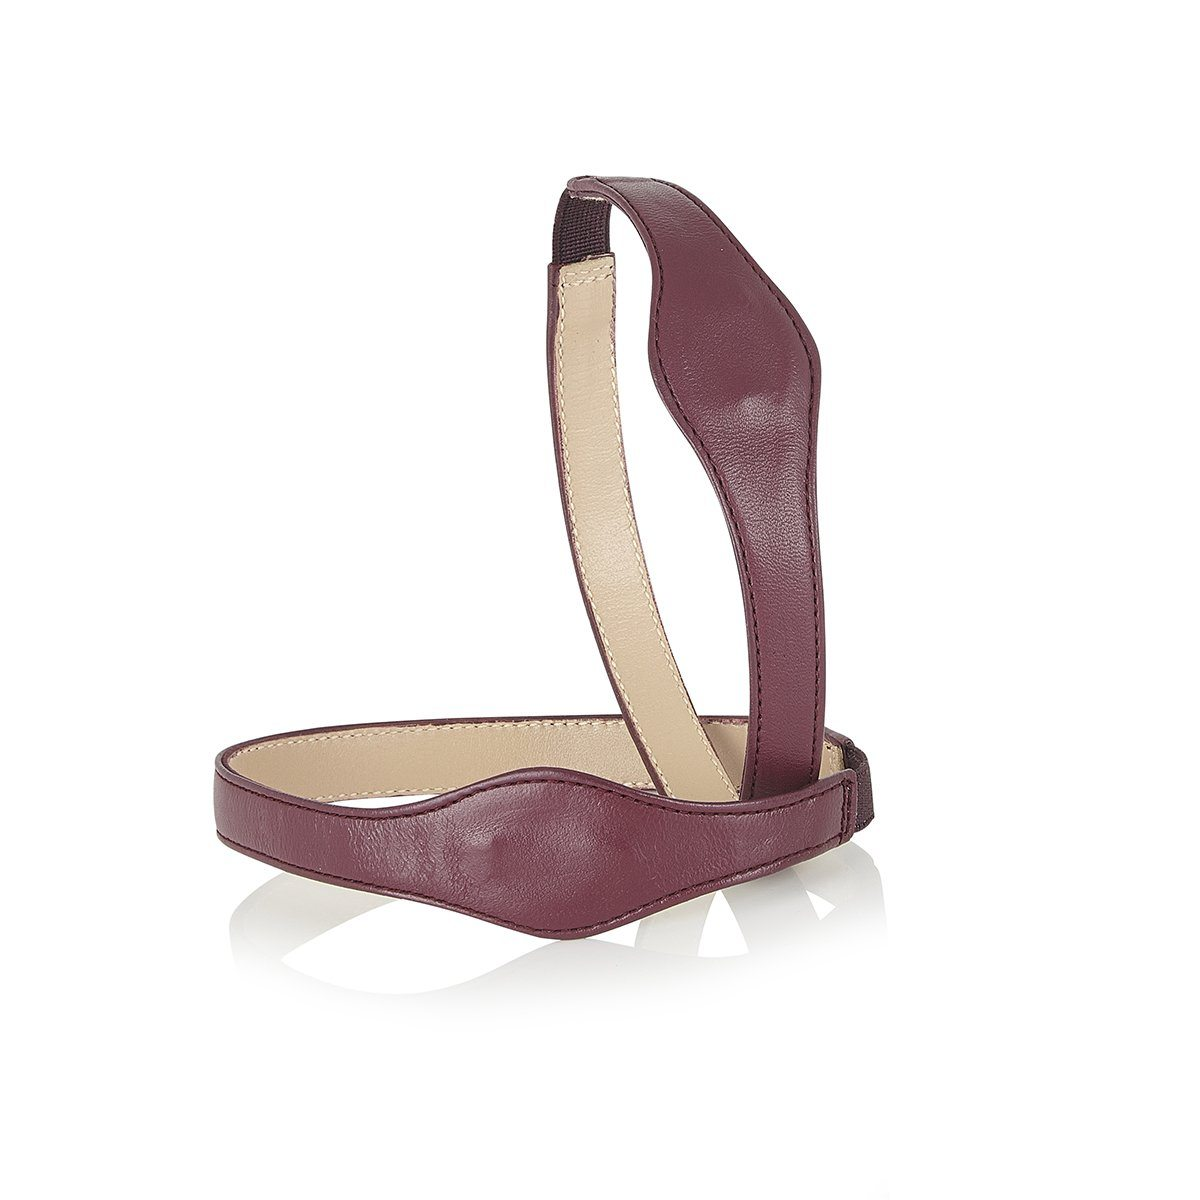 Follow Your Butterflies - Block Heels - Plum Leather - Shoes by Shaherazad